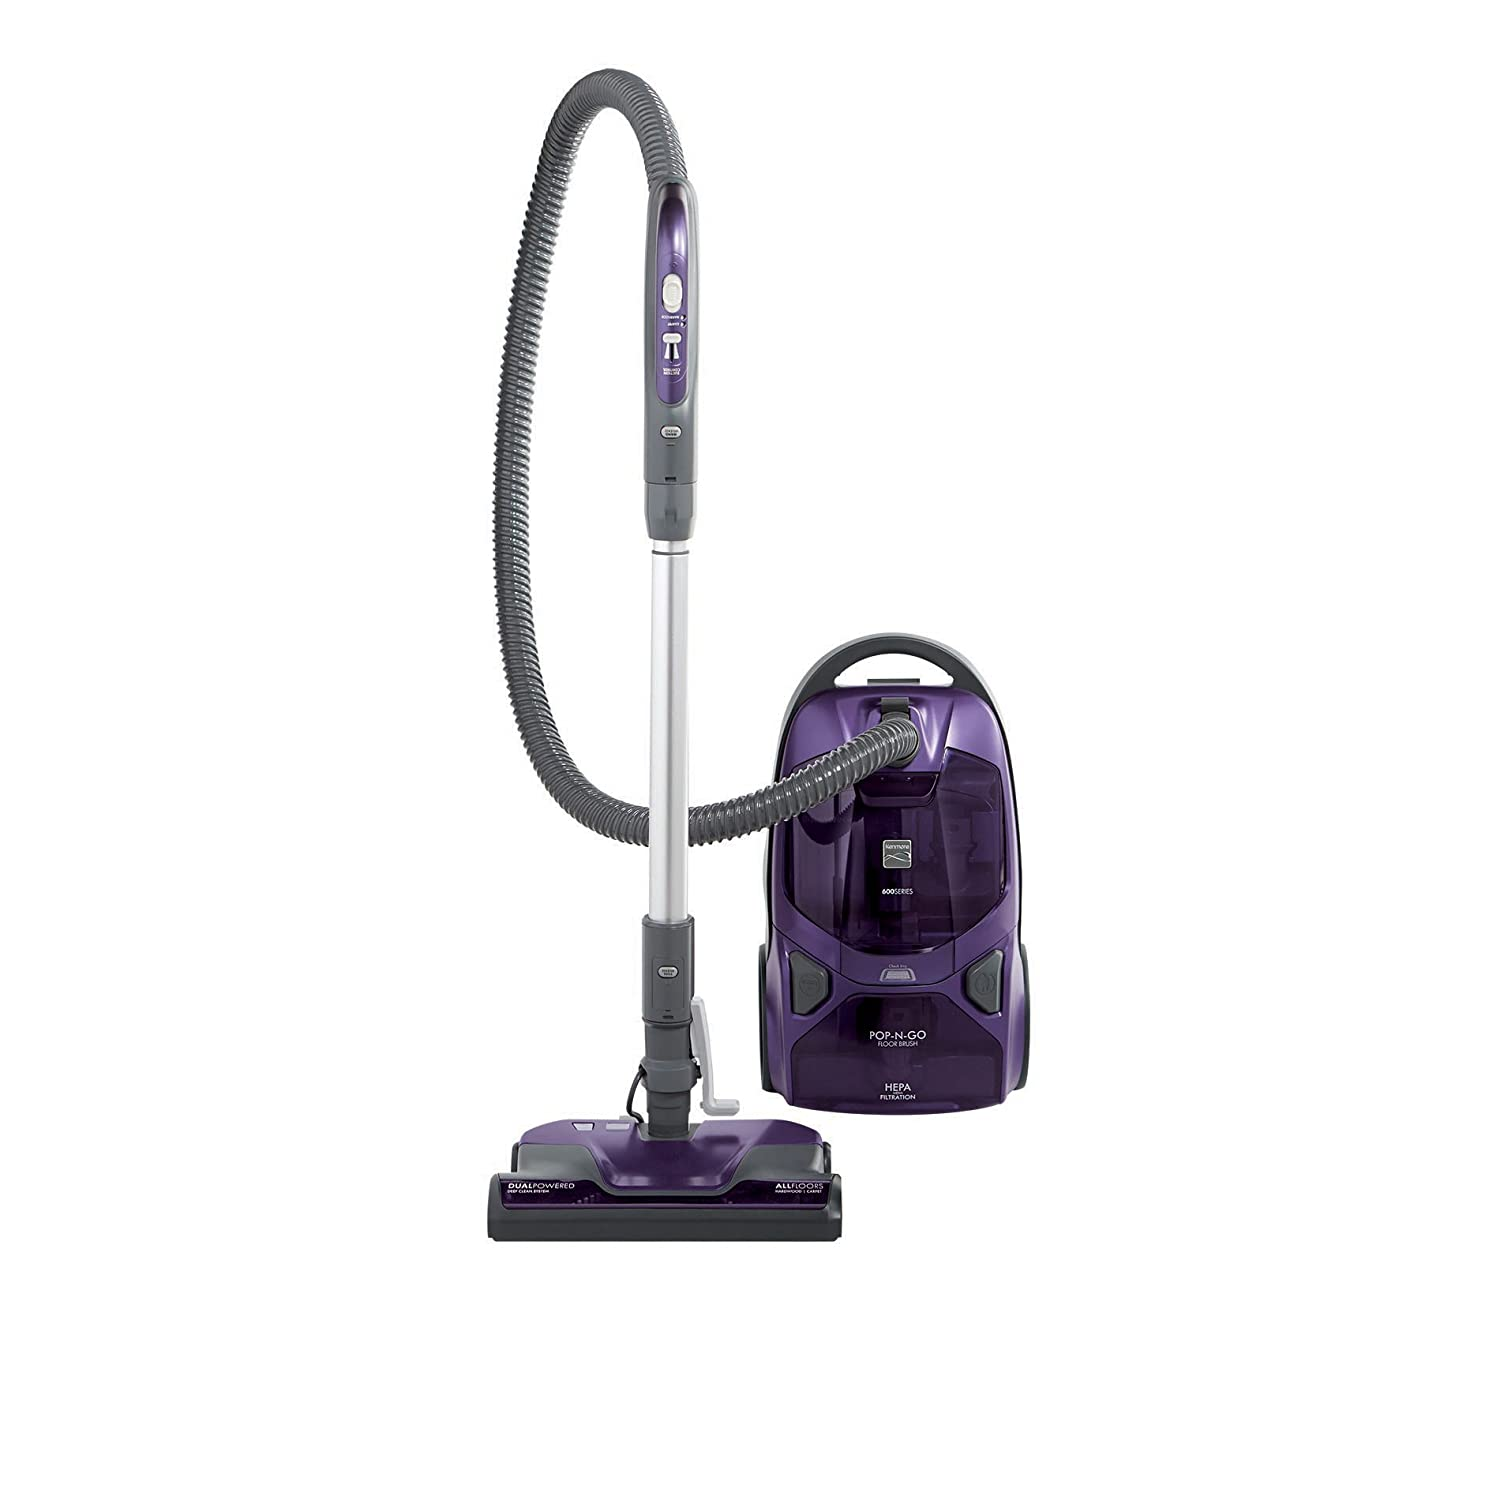 Kenmore 81614 – Best vacuum for dog hair